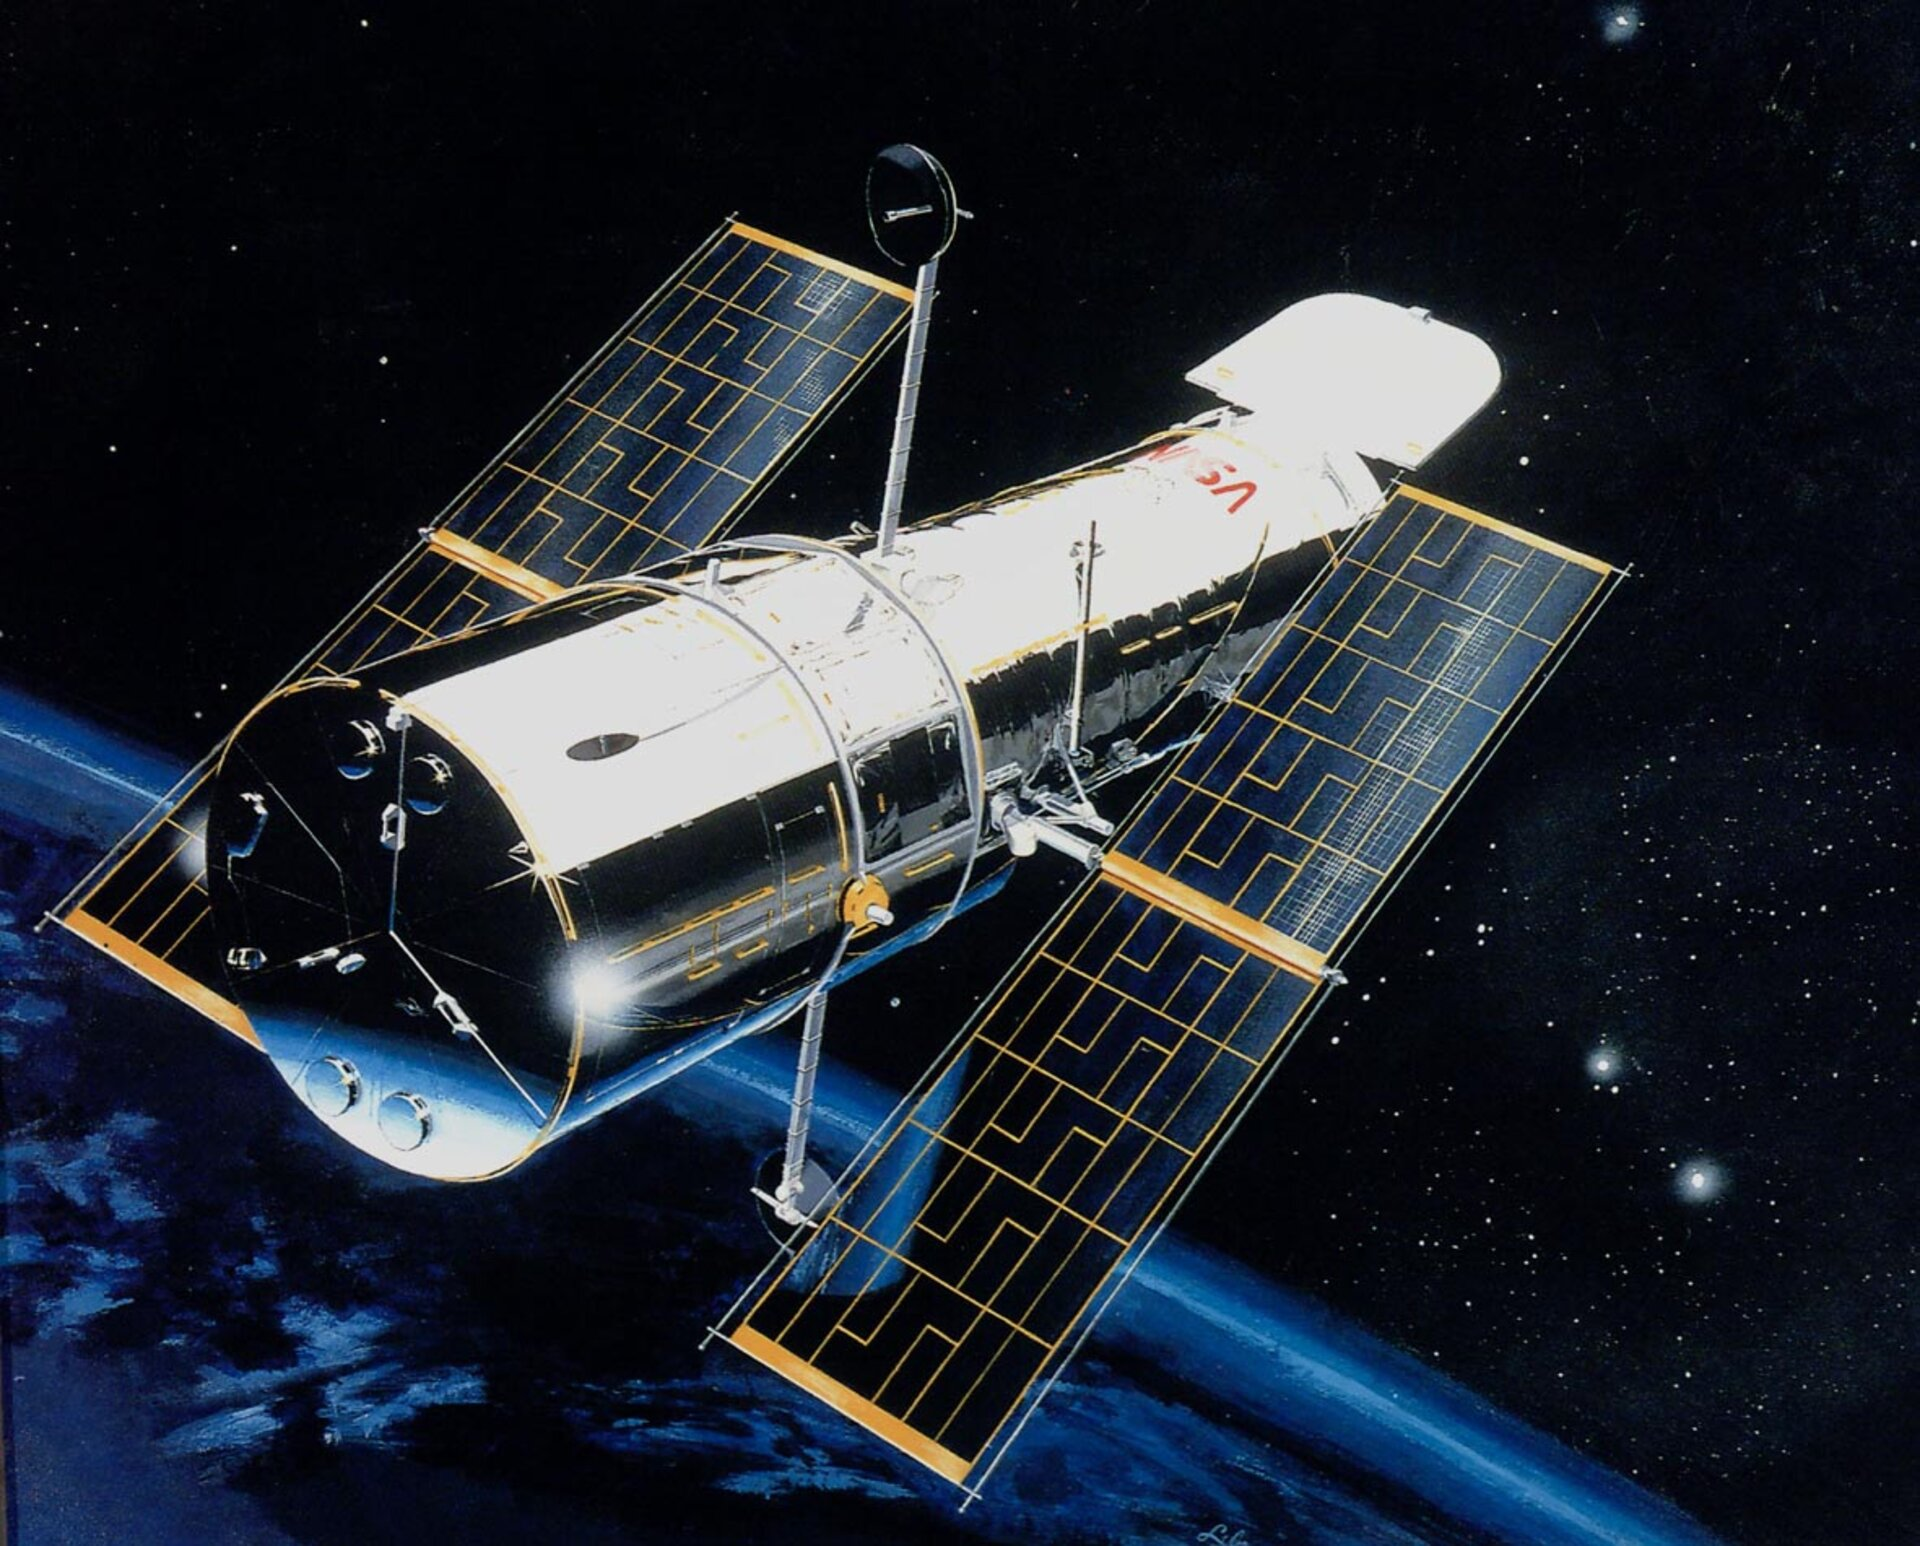 Hubble Space Telescope (HST), courtesy of NASA